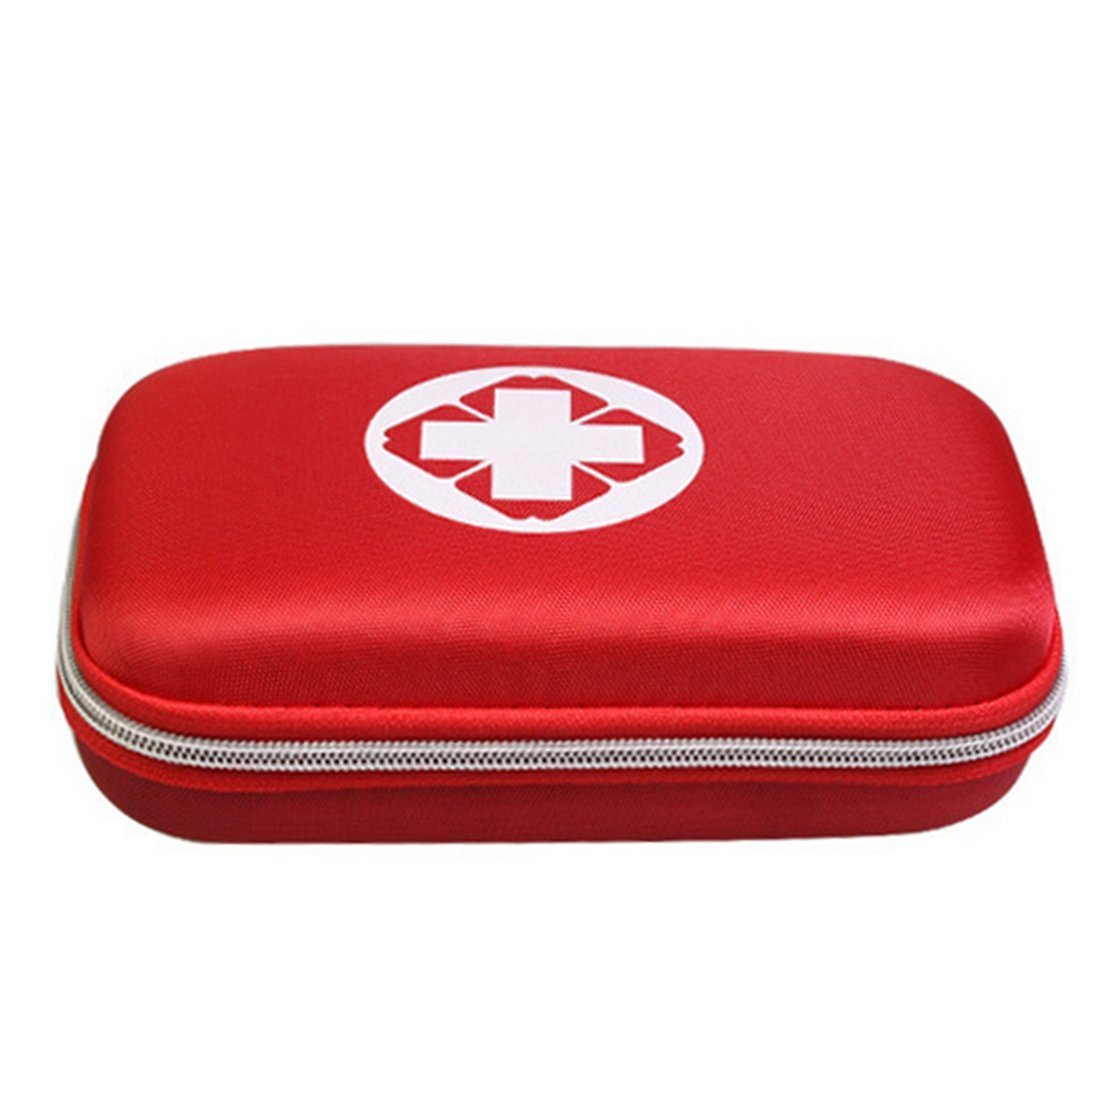 Lanticy First Aid Pouch Box, Empty Waterproof Medicine Storage Bag Portable Medical Package Emergency Medical Kit Survival Medicine Pills Pocket Container Perfect for Home Car Travel Outdoor (Red)